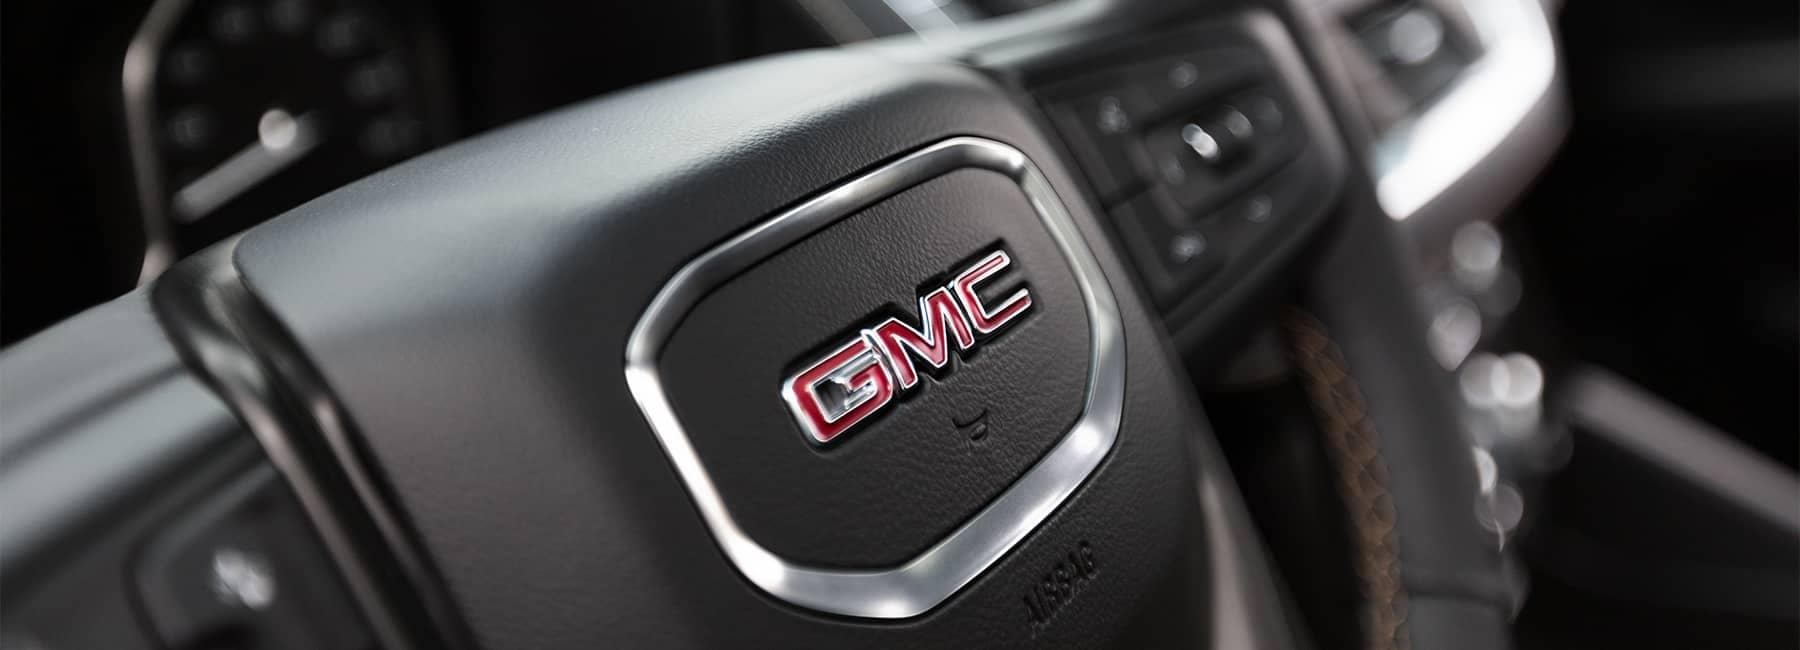 2021 GMC Steering Wheel Close Up